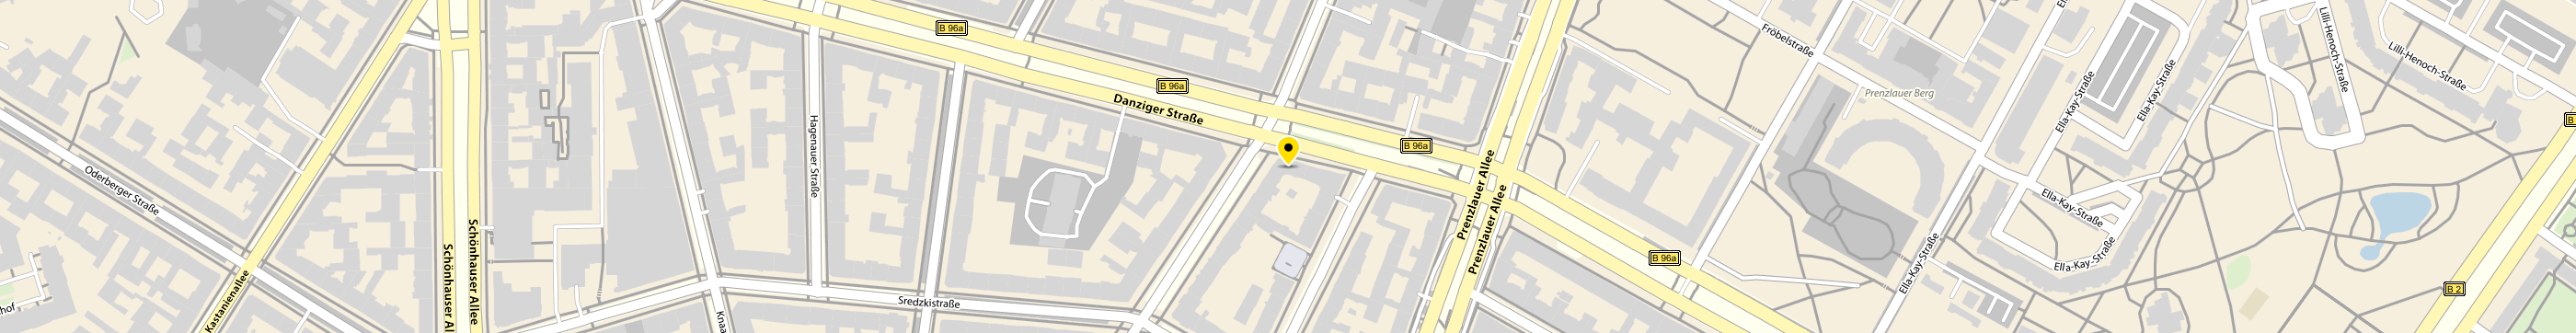 DPD-Partner Mini Markt & More in Berlin-Prenzlauer Berg Karte